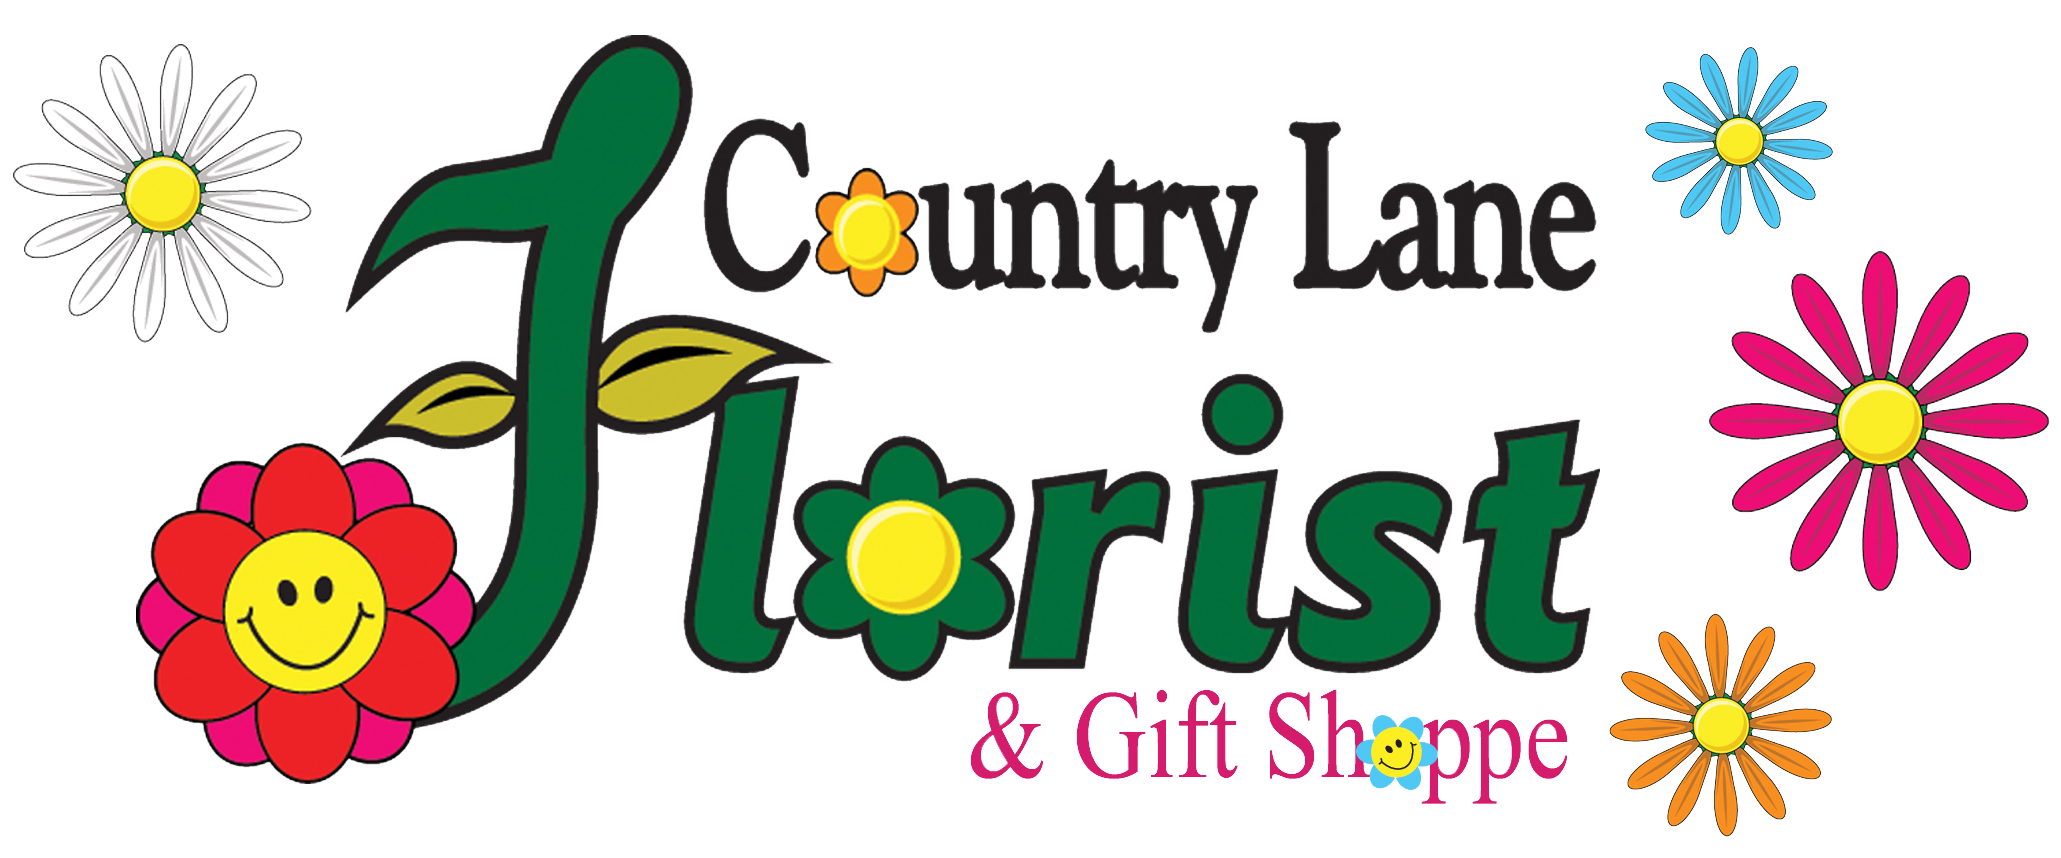 Proud clipart obscenity. Country lane florist in